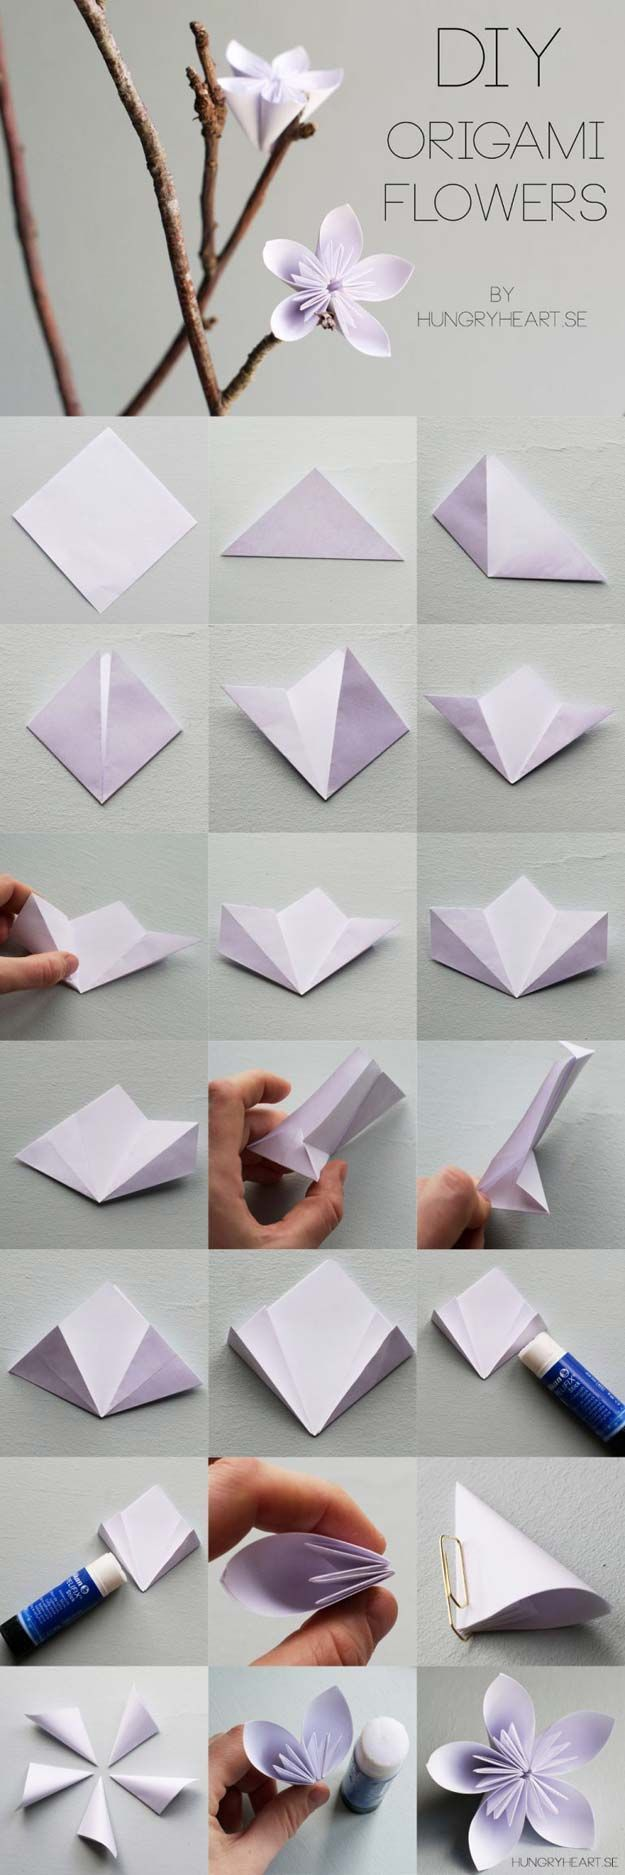 Best Origami Tutorials - Flower Origami - Simple DIY Origami Tutorial Projects for